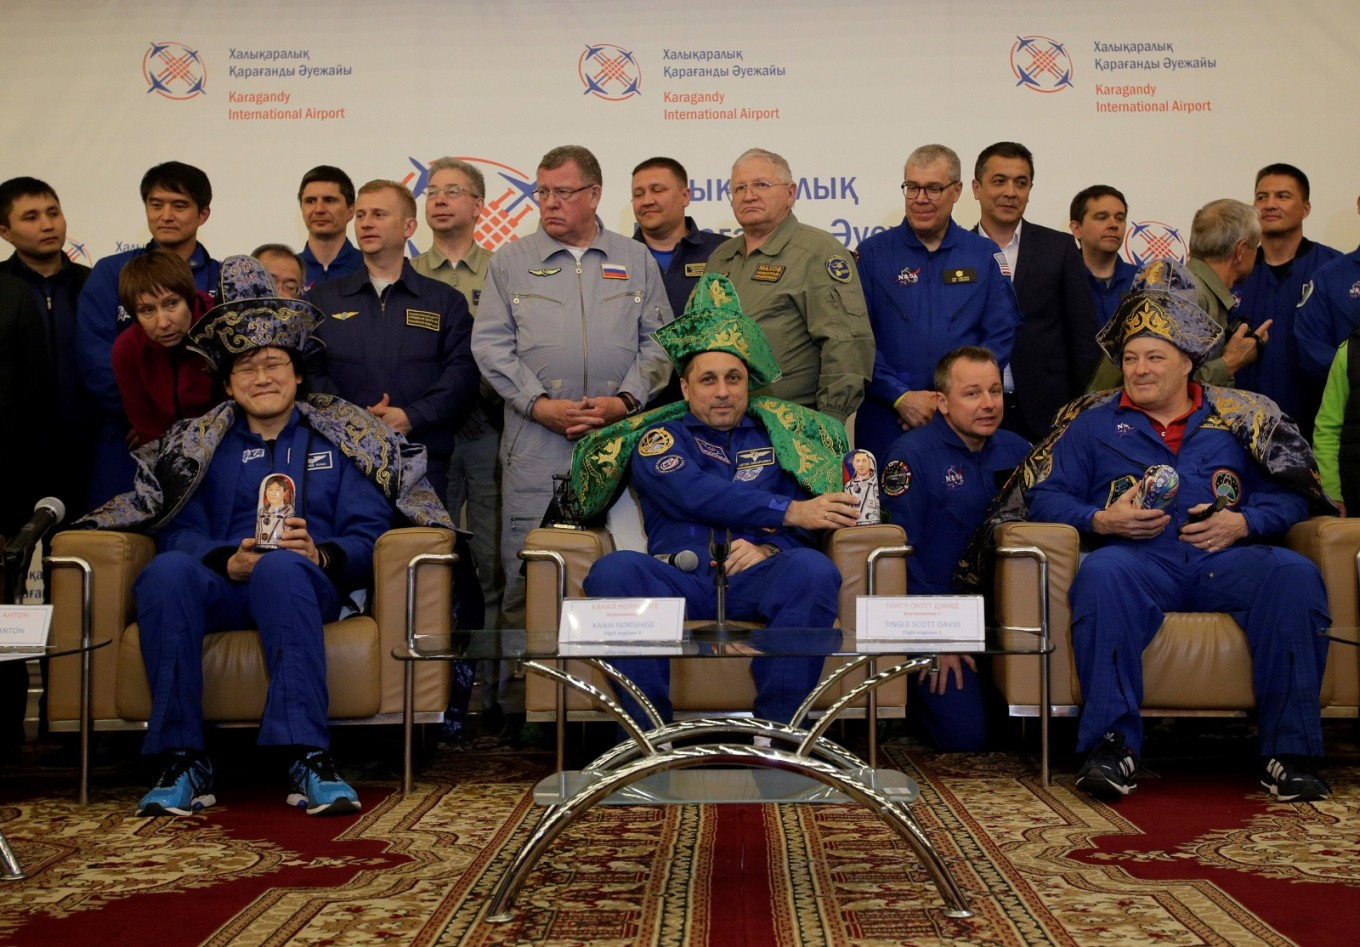 Trio reach Earth from ISS with football slated for World Cup